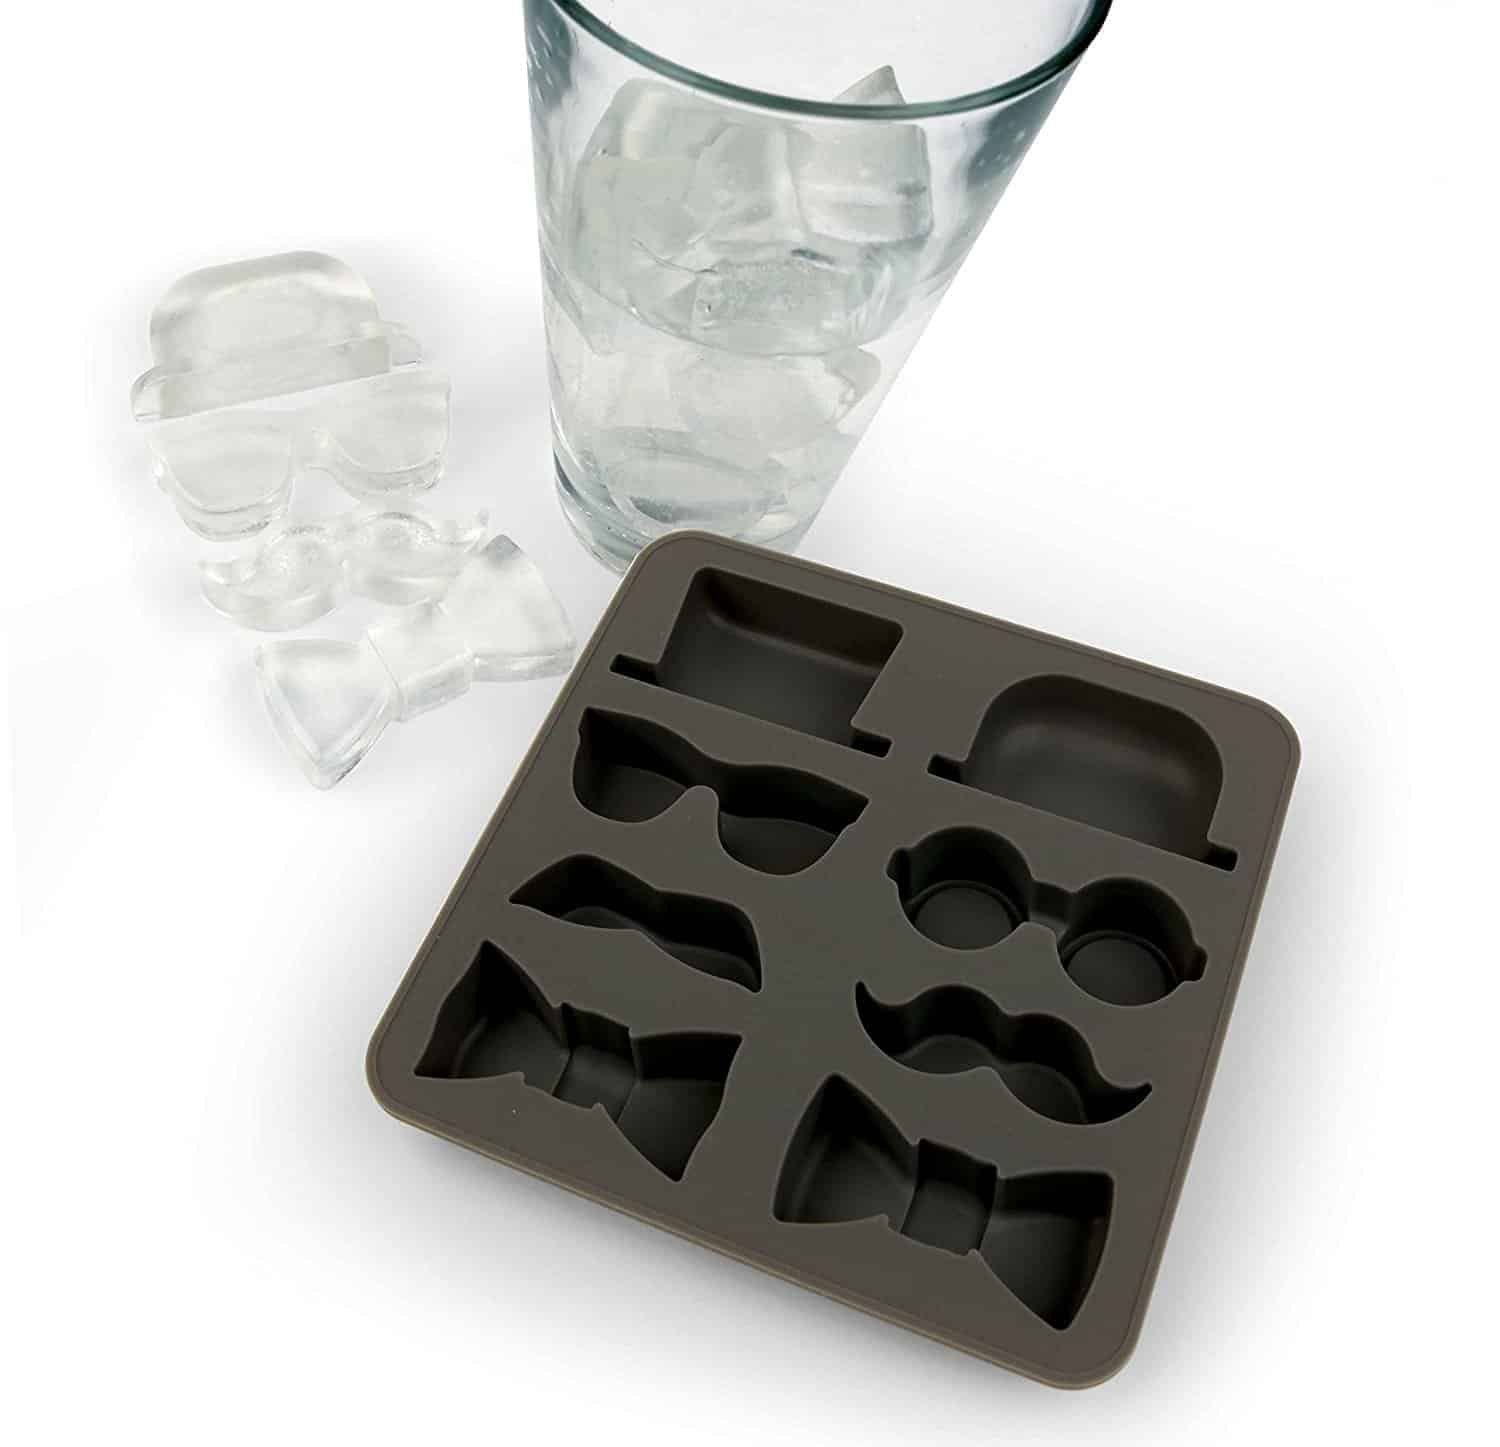 22 Unique And Creative Ice Cube Trays You Can Buy This Summer 16